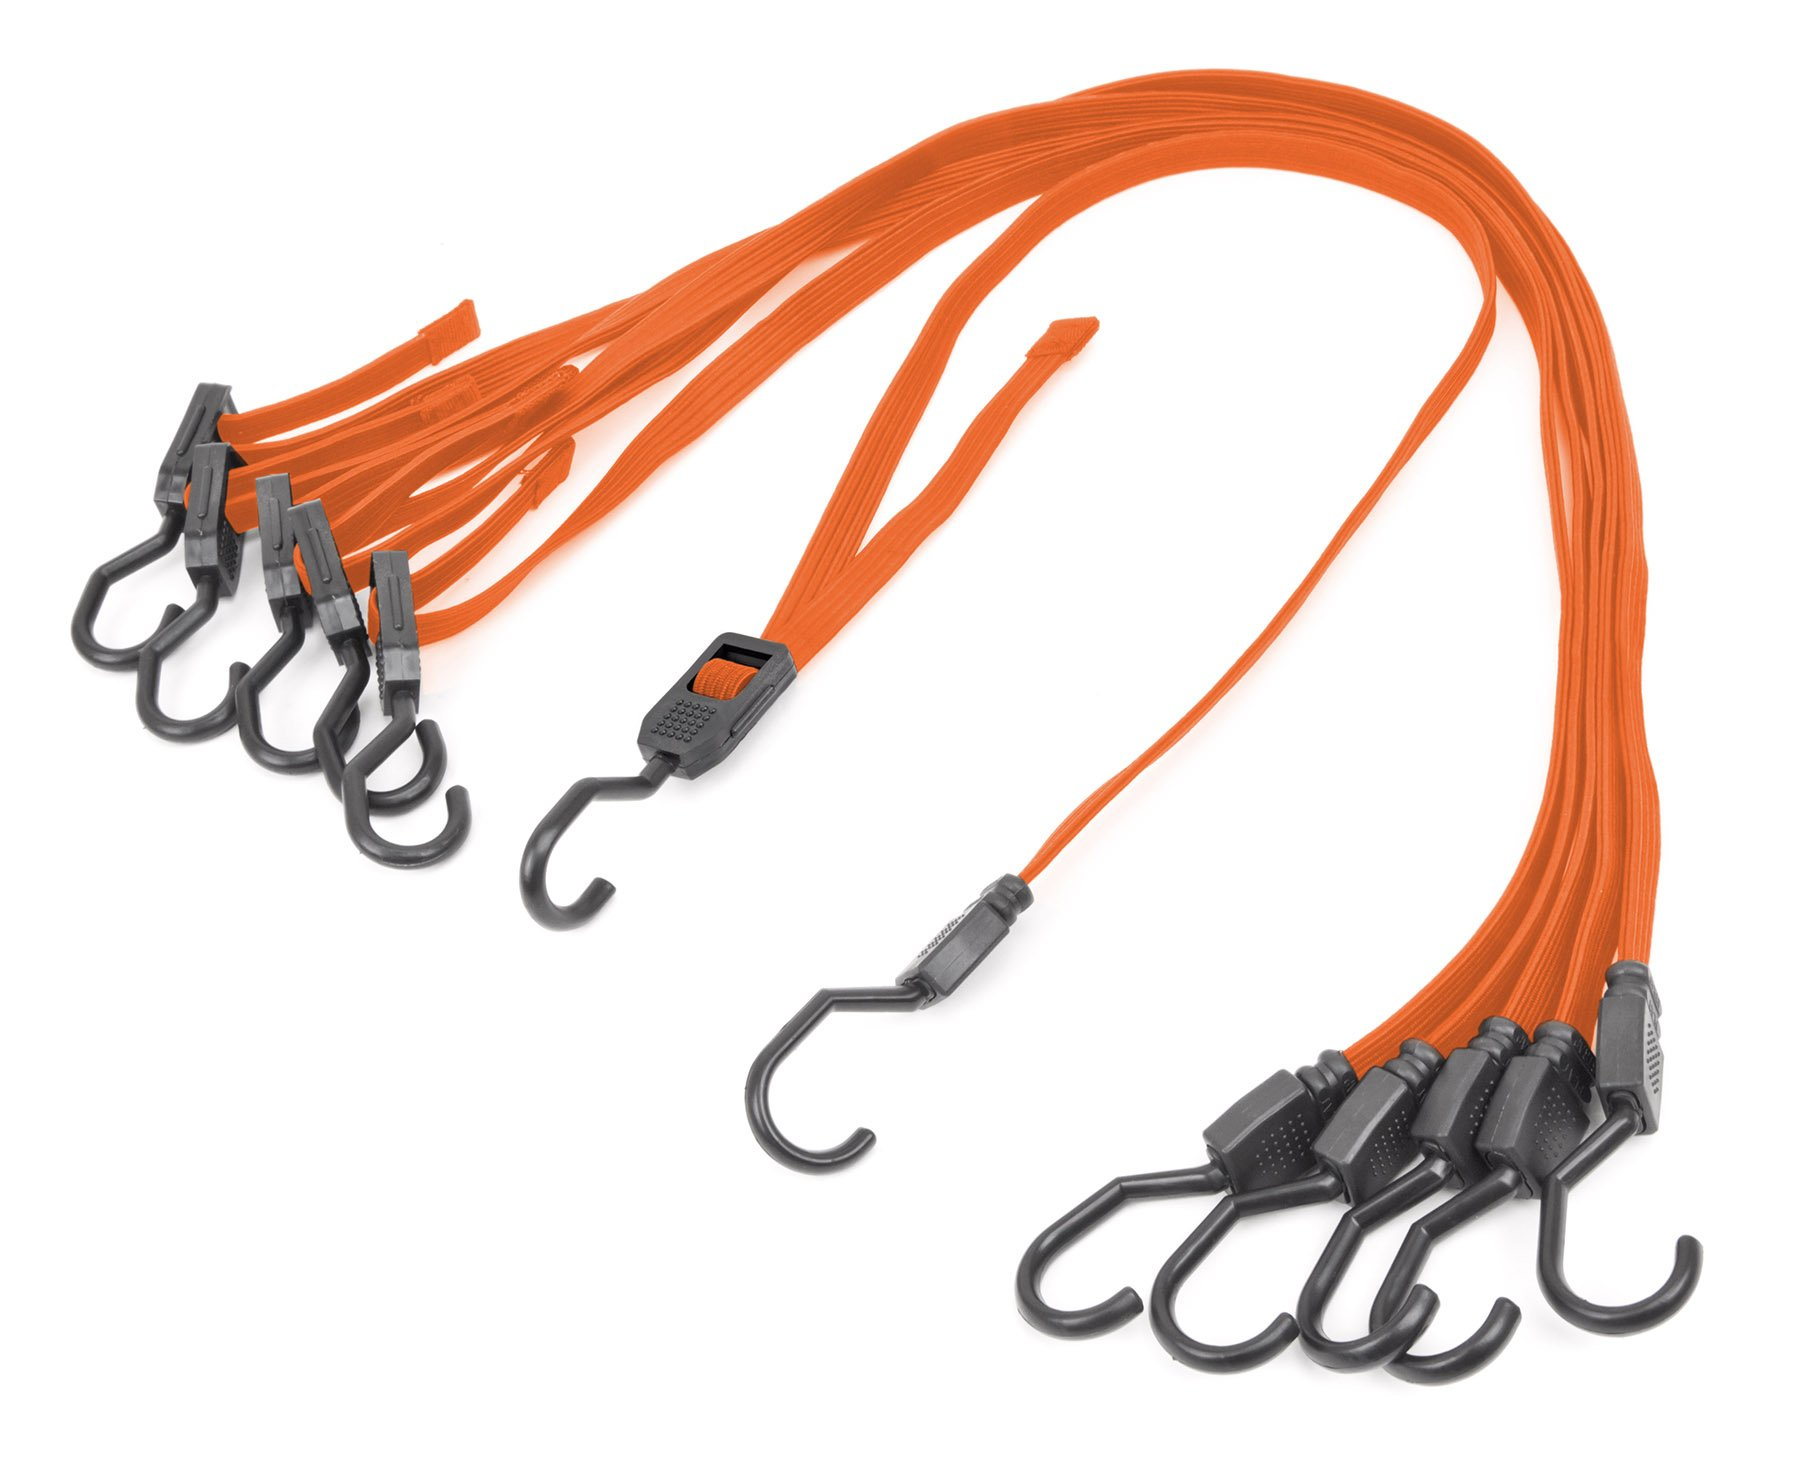 Powertye Mfg Changeable-Length Flat Bungee Cords made with Premium Latex Rubber (adjusts from 12'' to 45''), Metal Hooks with Hard Plastic Coating (6-Pack)